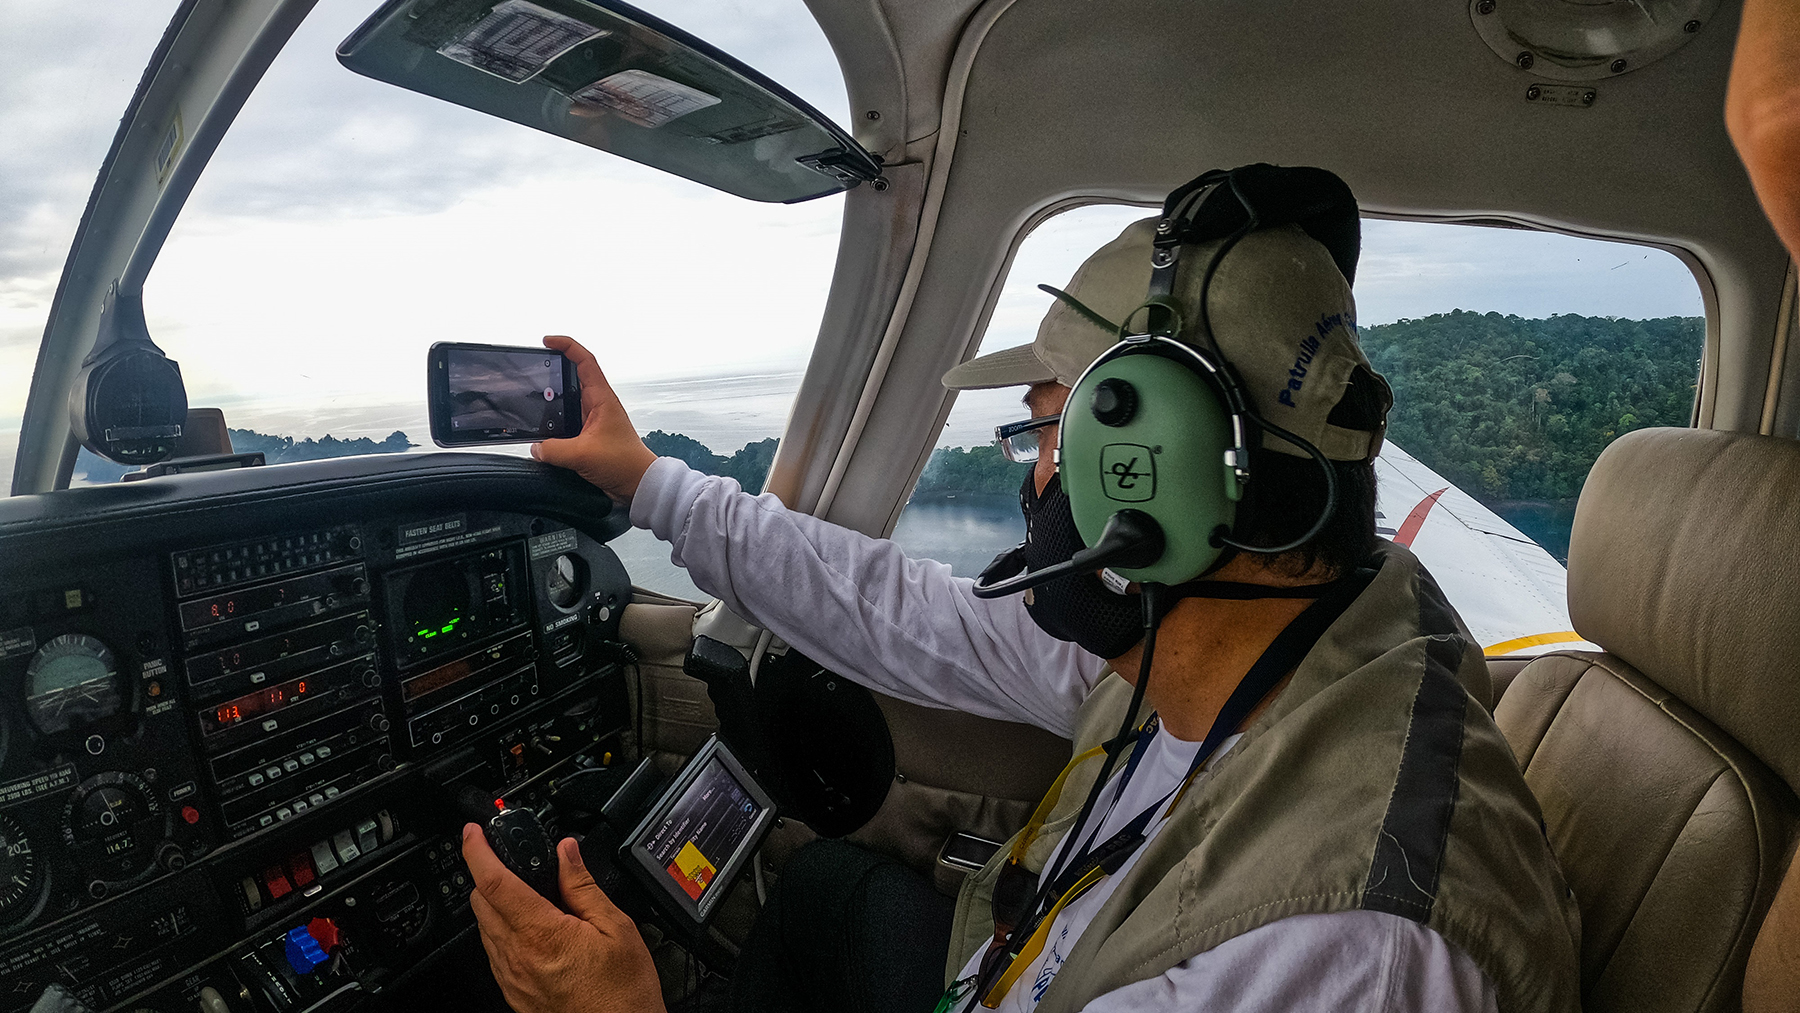 A PAC pilot mid-flight. (Photo courtesy of PAC)